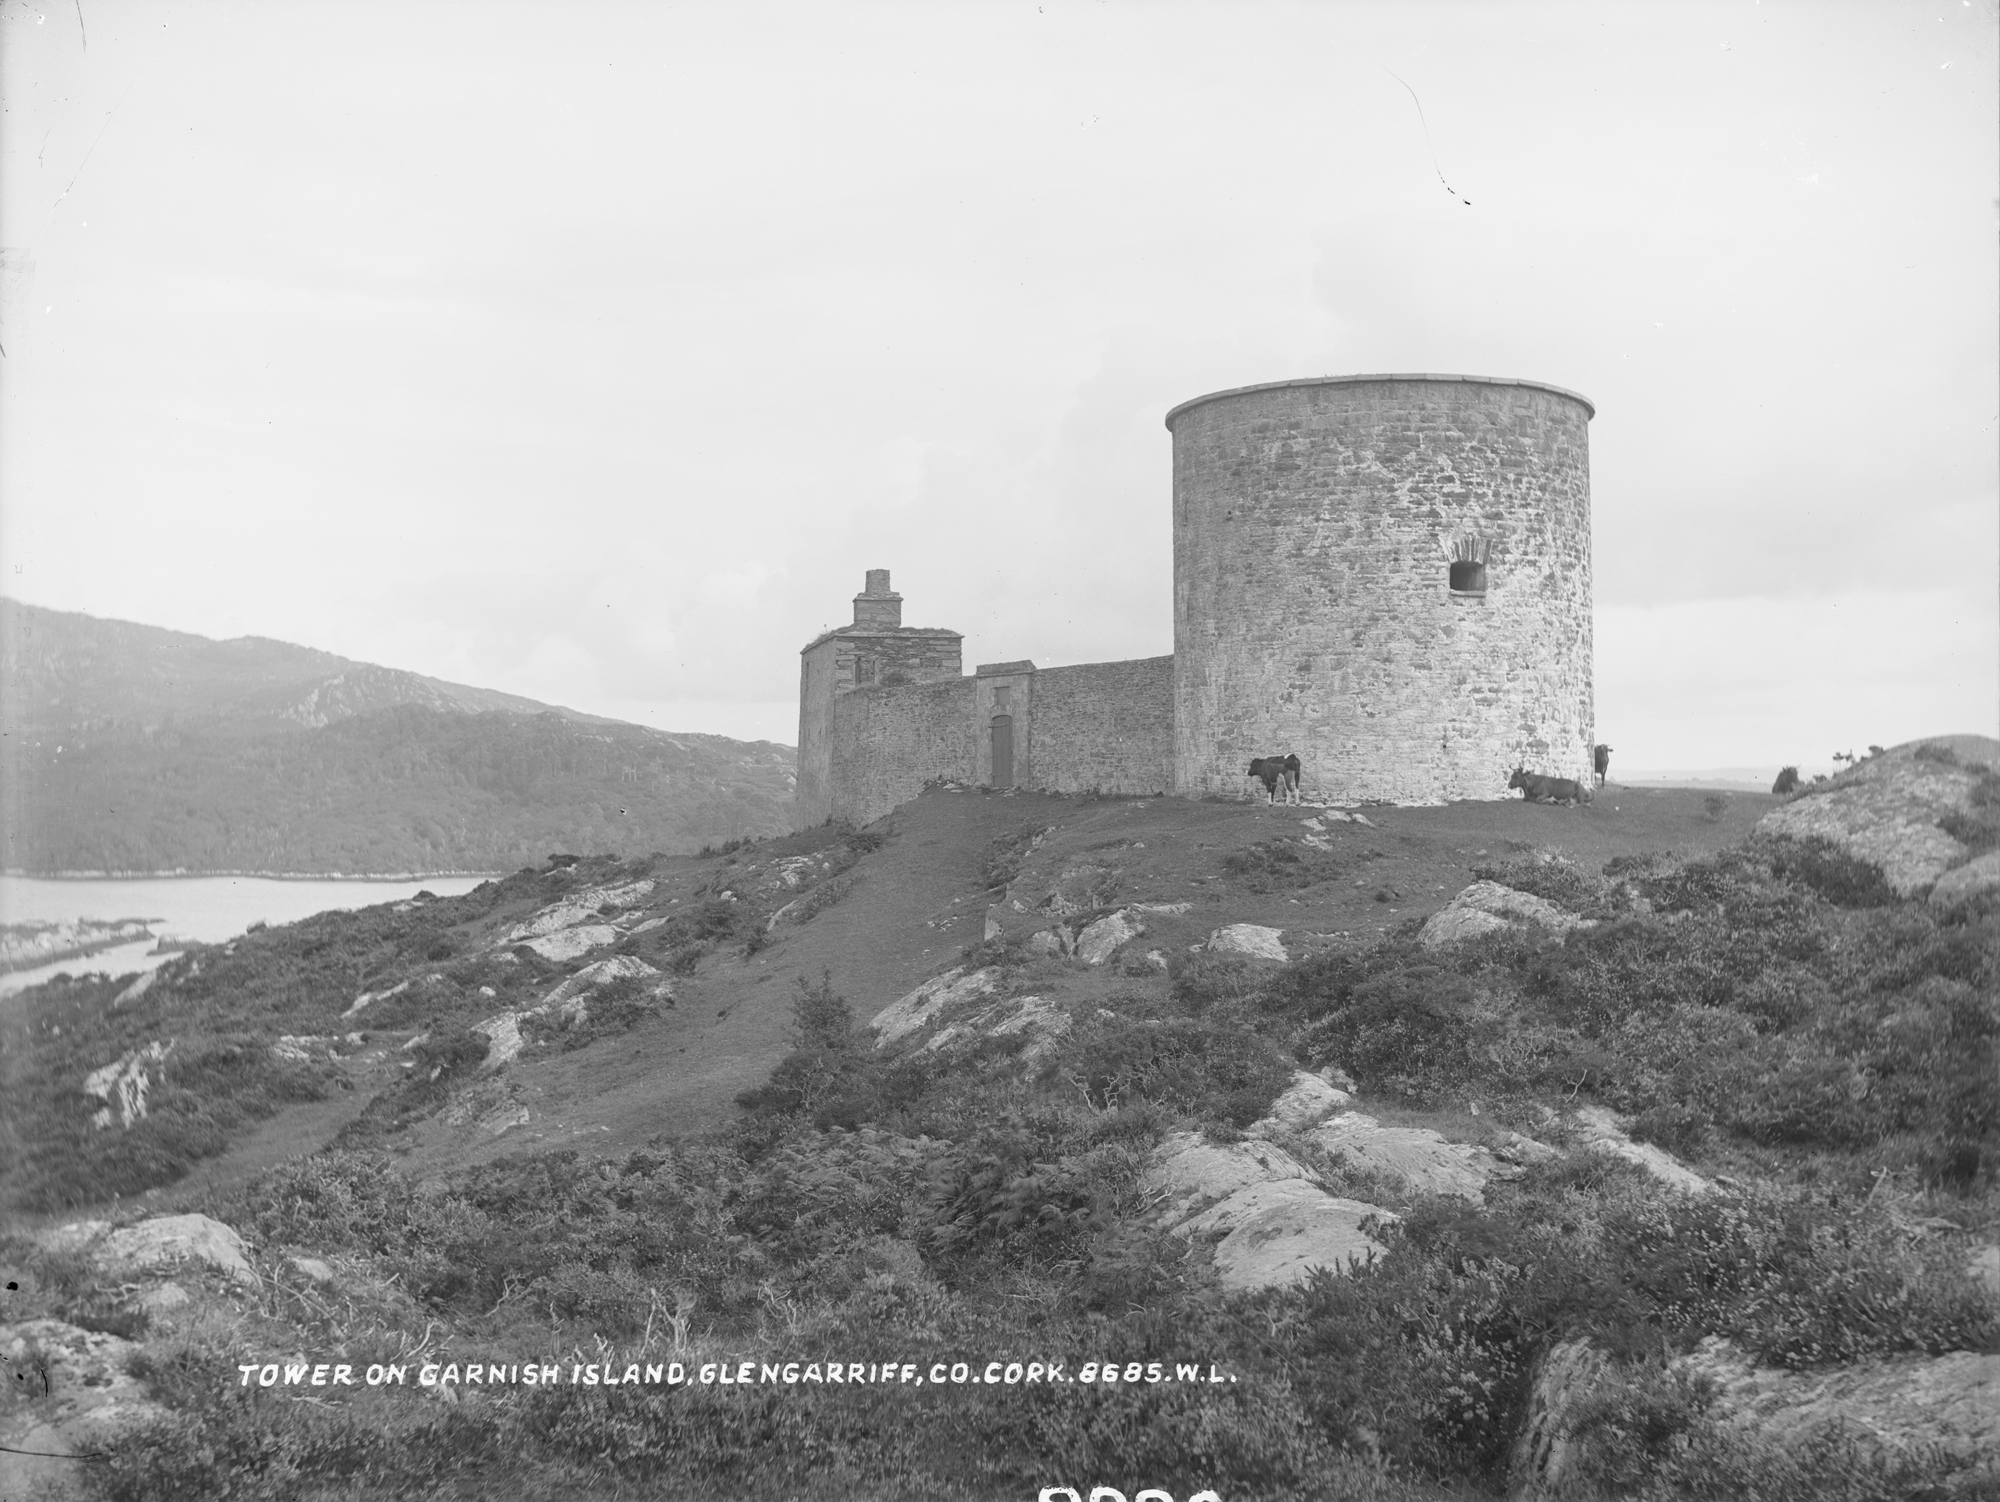 Garinish Island Tower, Glengarriff, Co. Cork